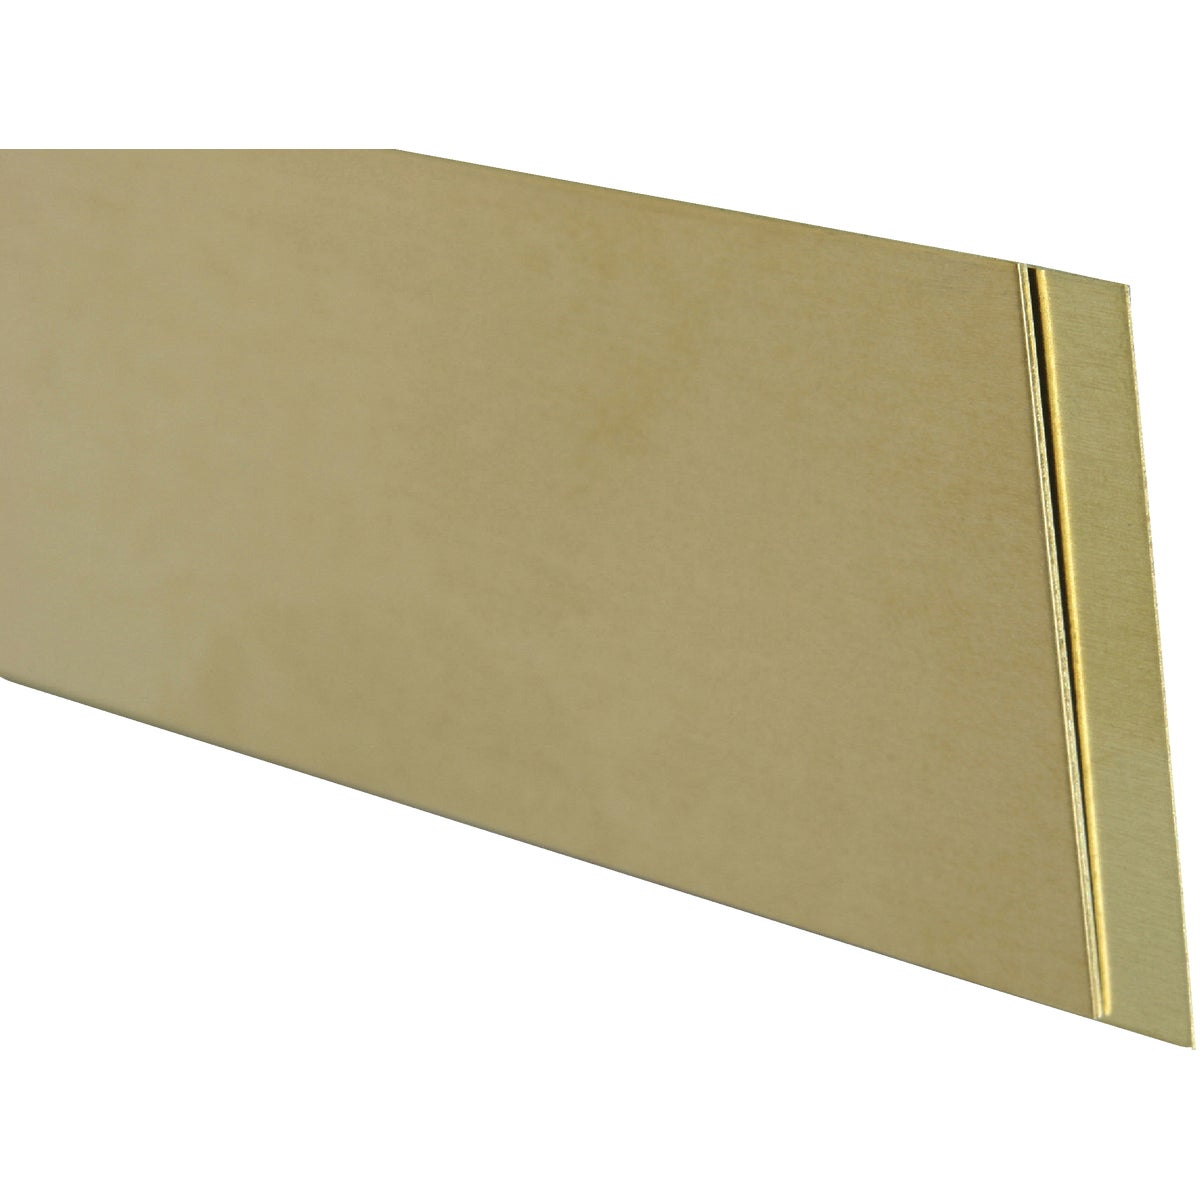 .016X1X12 BRASS STRIP - 8232 by K&s Precision Metals